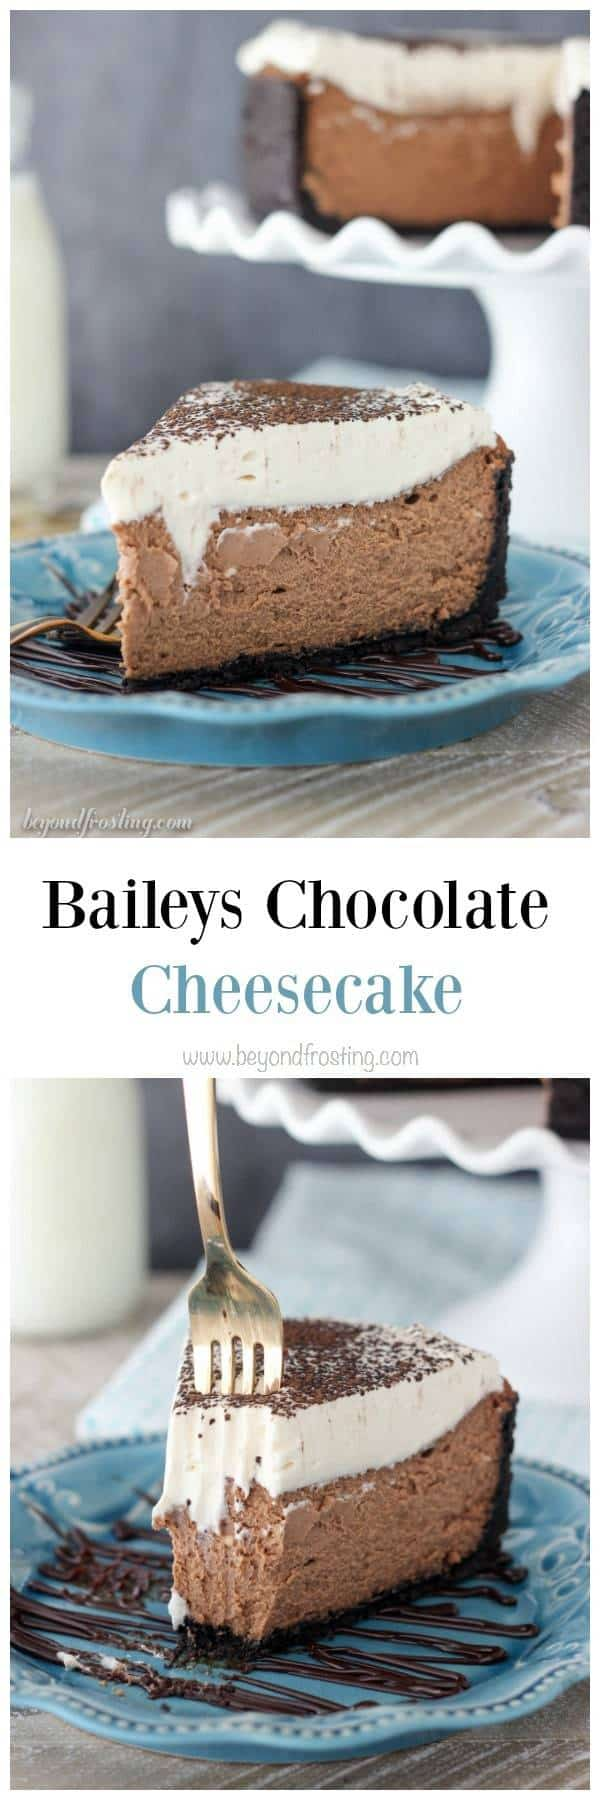 This Bailey's Chocolate Cheesecake only requires a few simple ingredients, but the best is the melted chocolate in the cheesecake! To make it even better, it's top off with a Bailey's Whipped Cream!